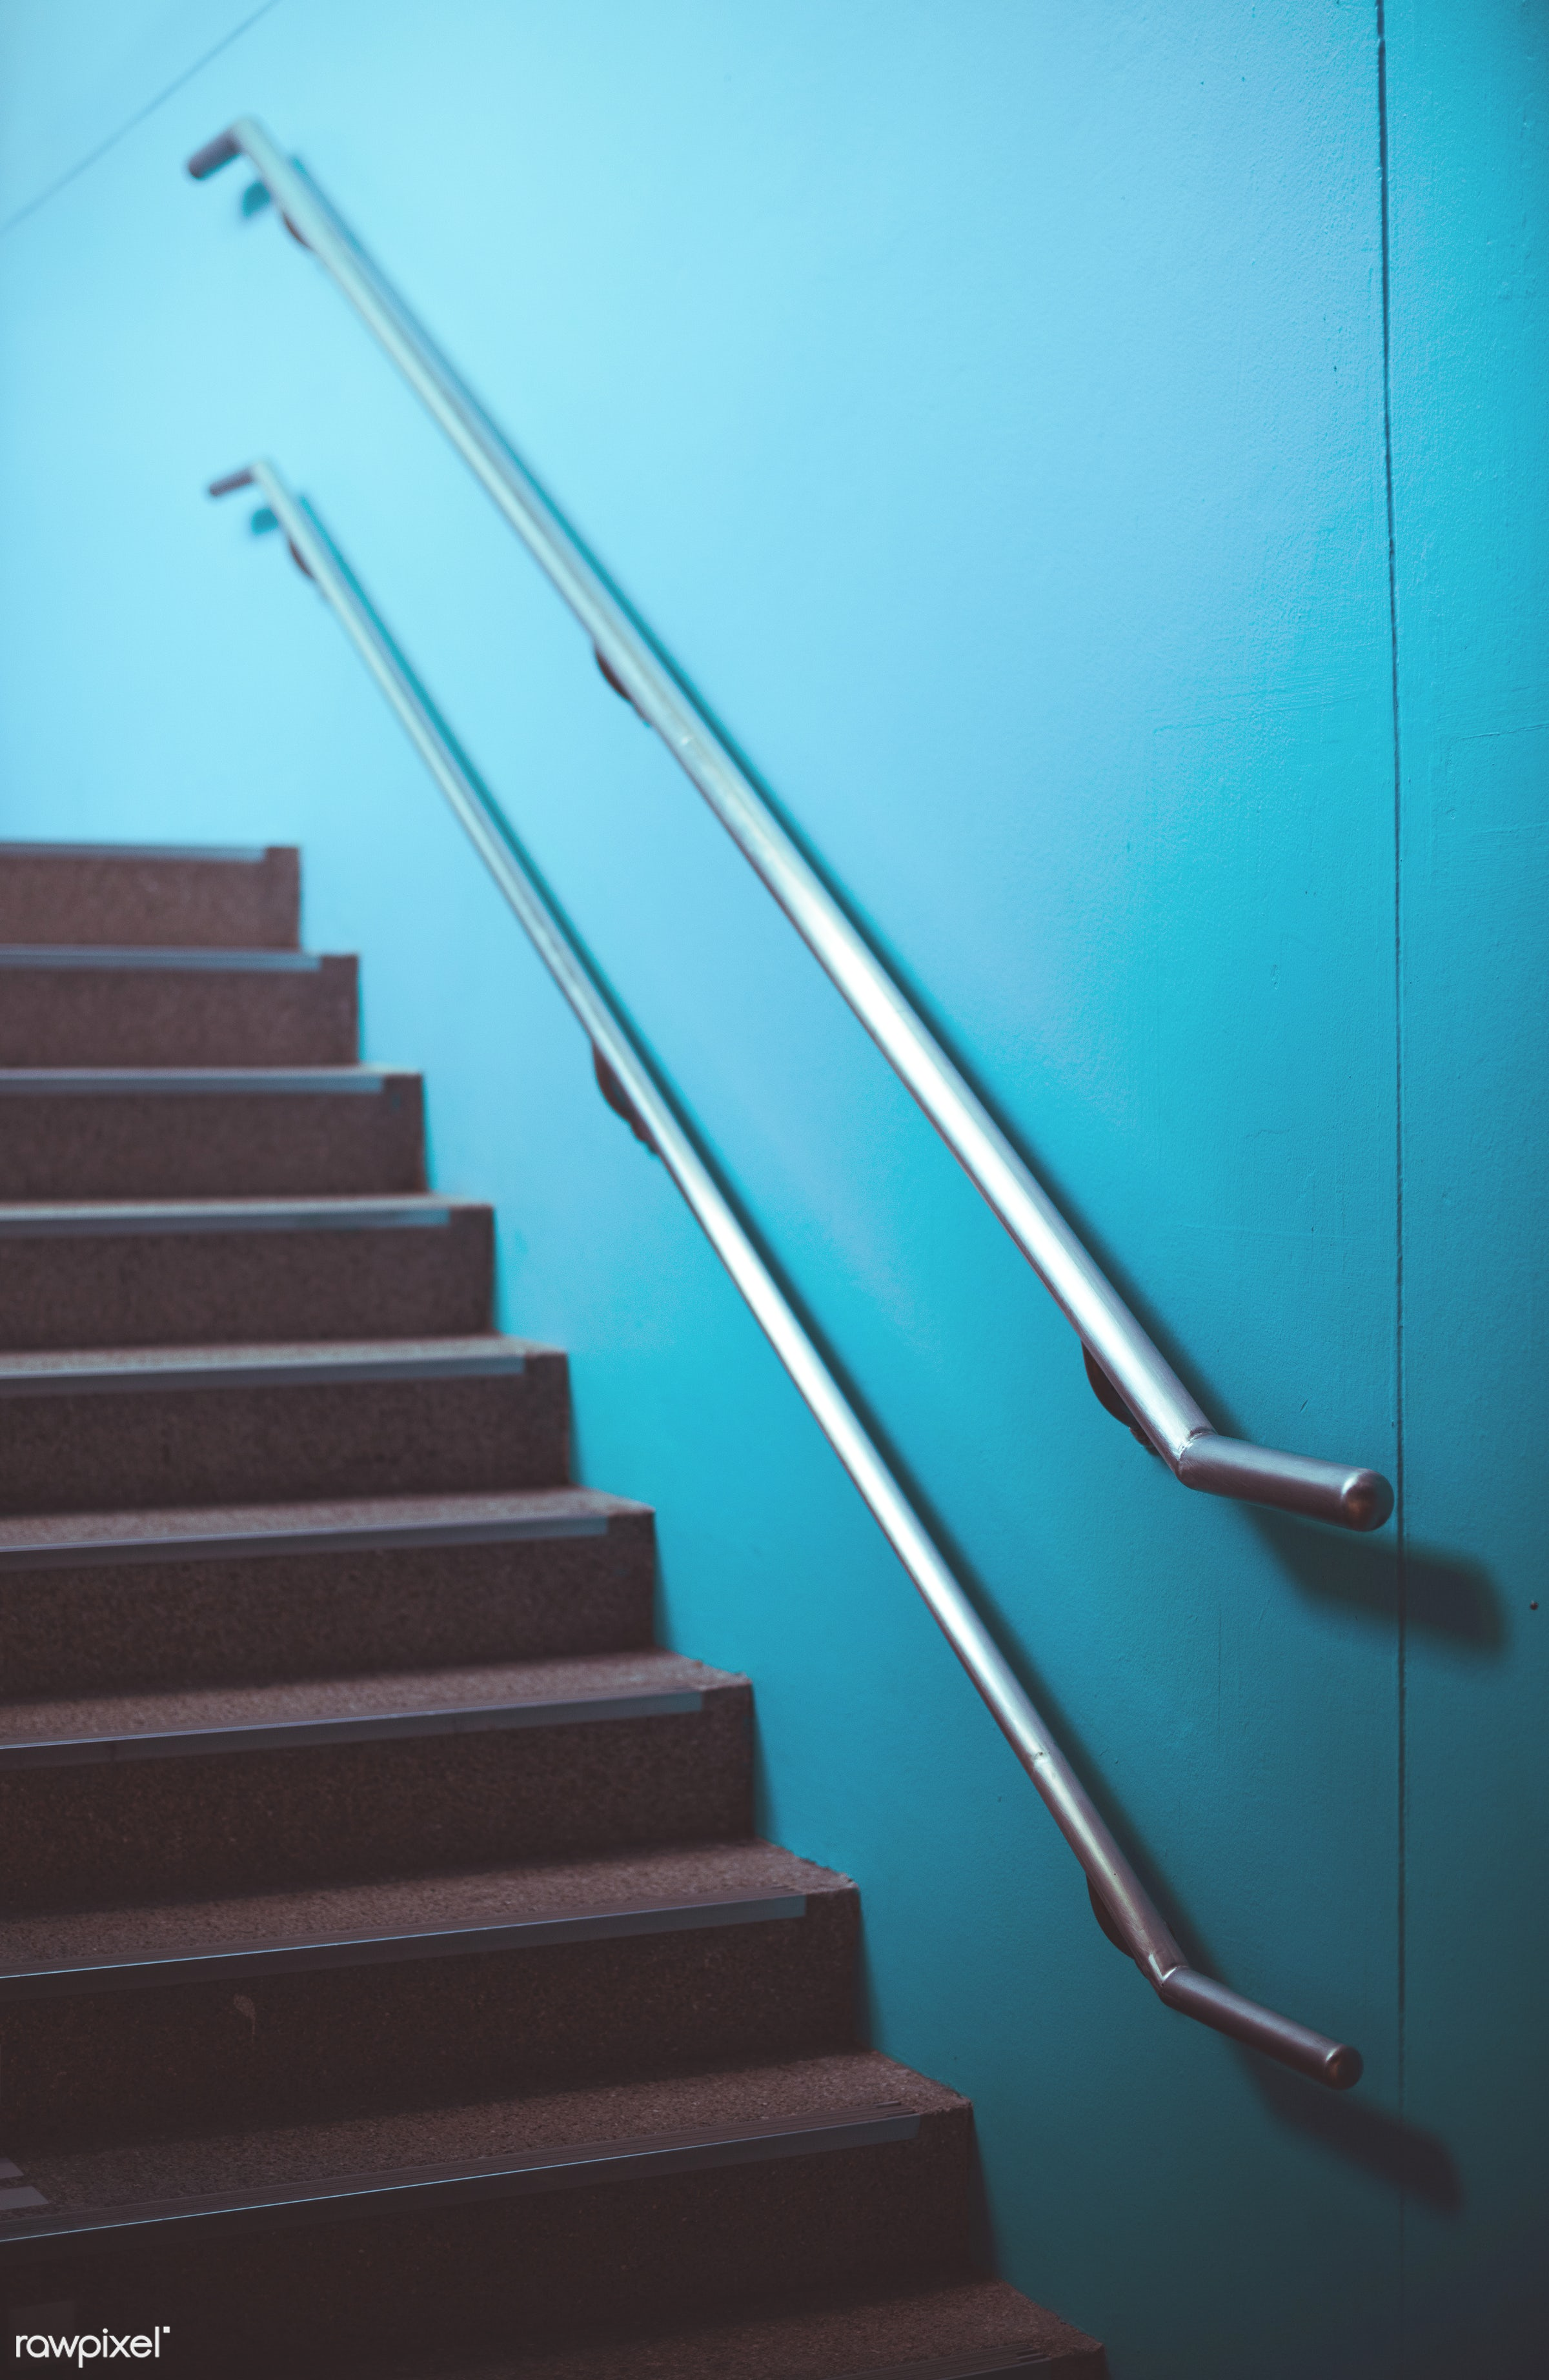 stair, building, stairwell, blue wall, steps, architecture, up, stairway, staircase, handrail, walkway, stainless, learn,...